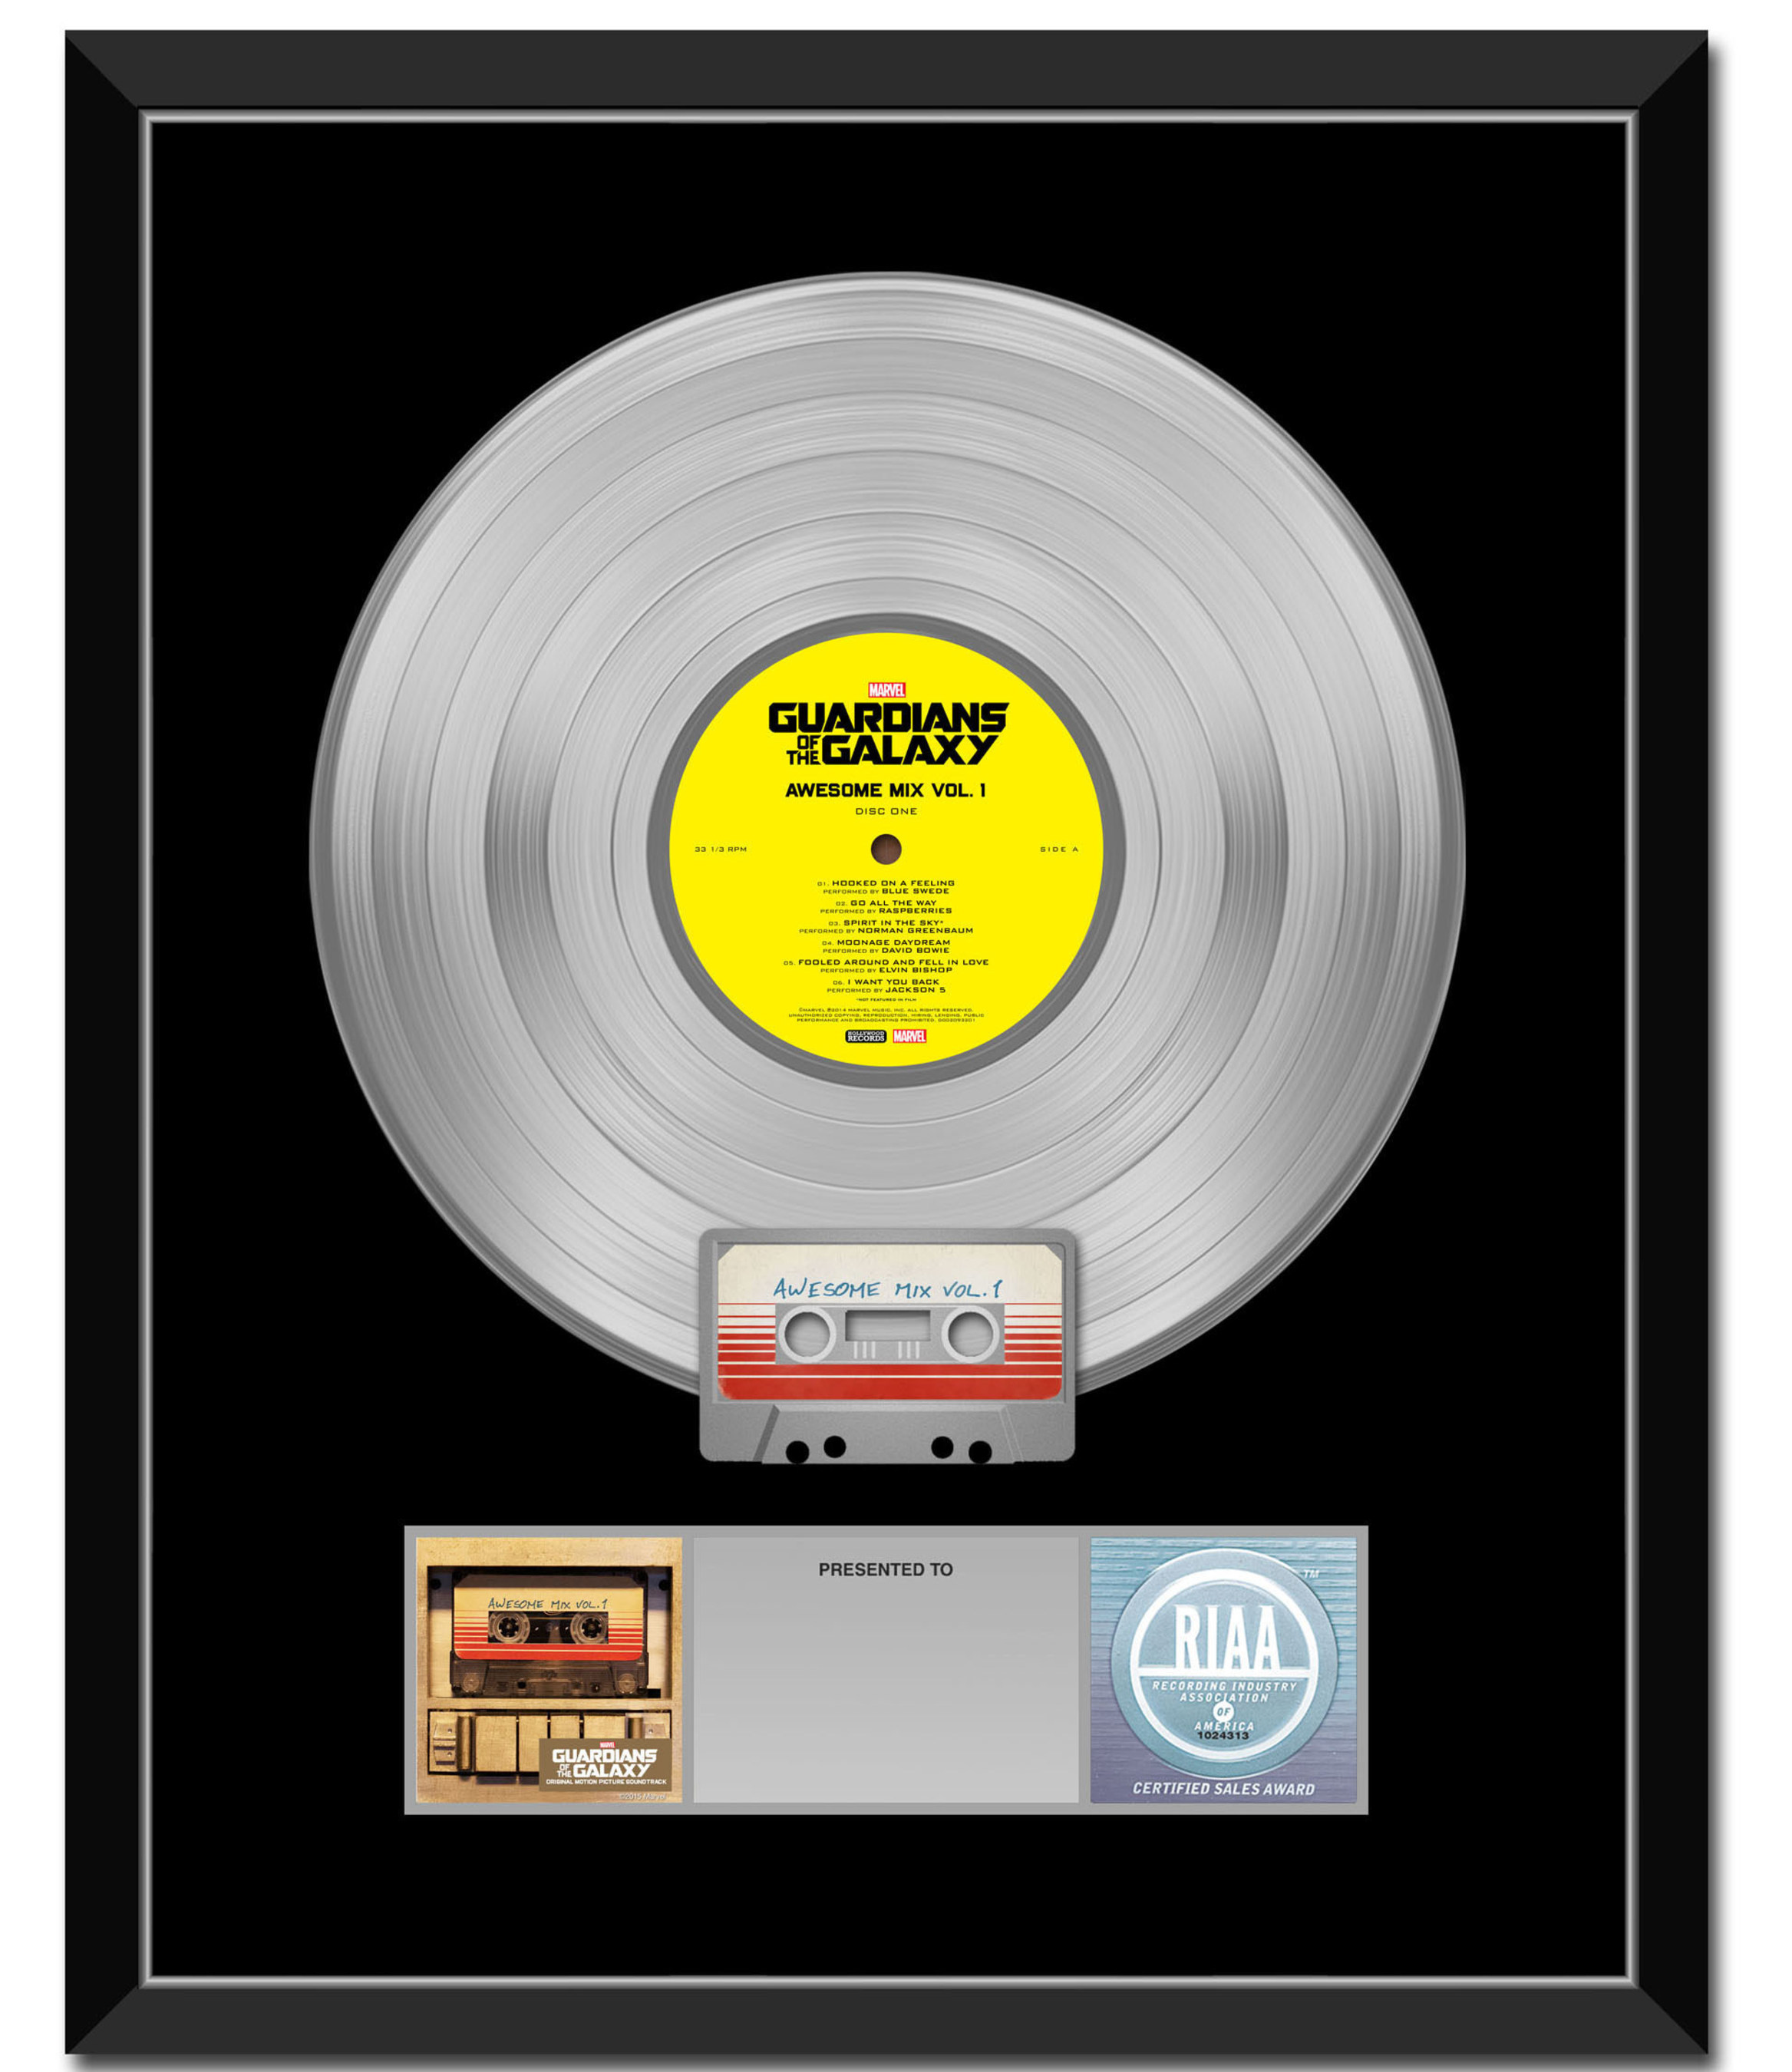 Marvel's Guardians Of The Galaxy Awesome Mix Vol. 1 Soundtrack Is Certified Platinum